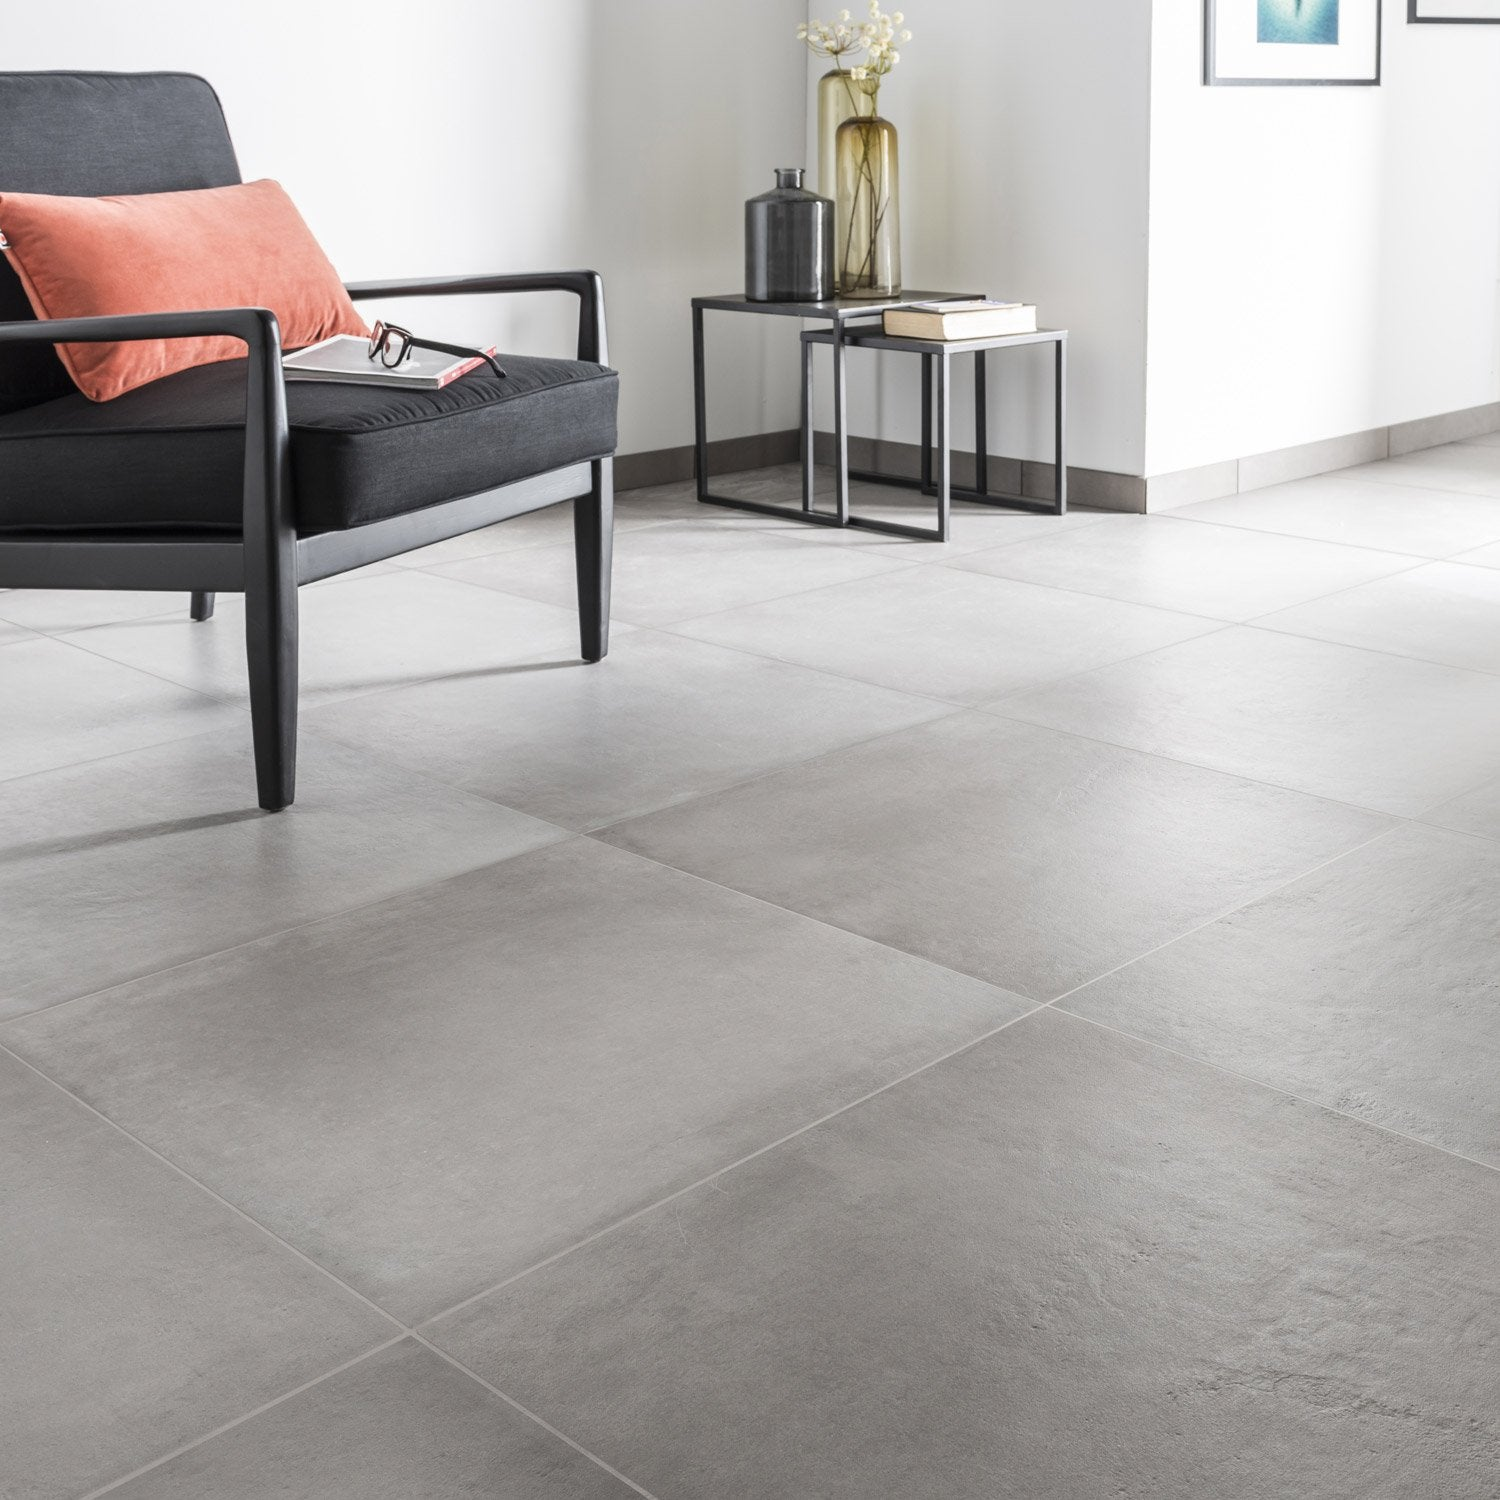 Carrelage sol et mur gris ciment effet b ton time x l for Carrelage 60x60 gris anthracite